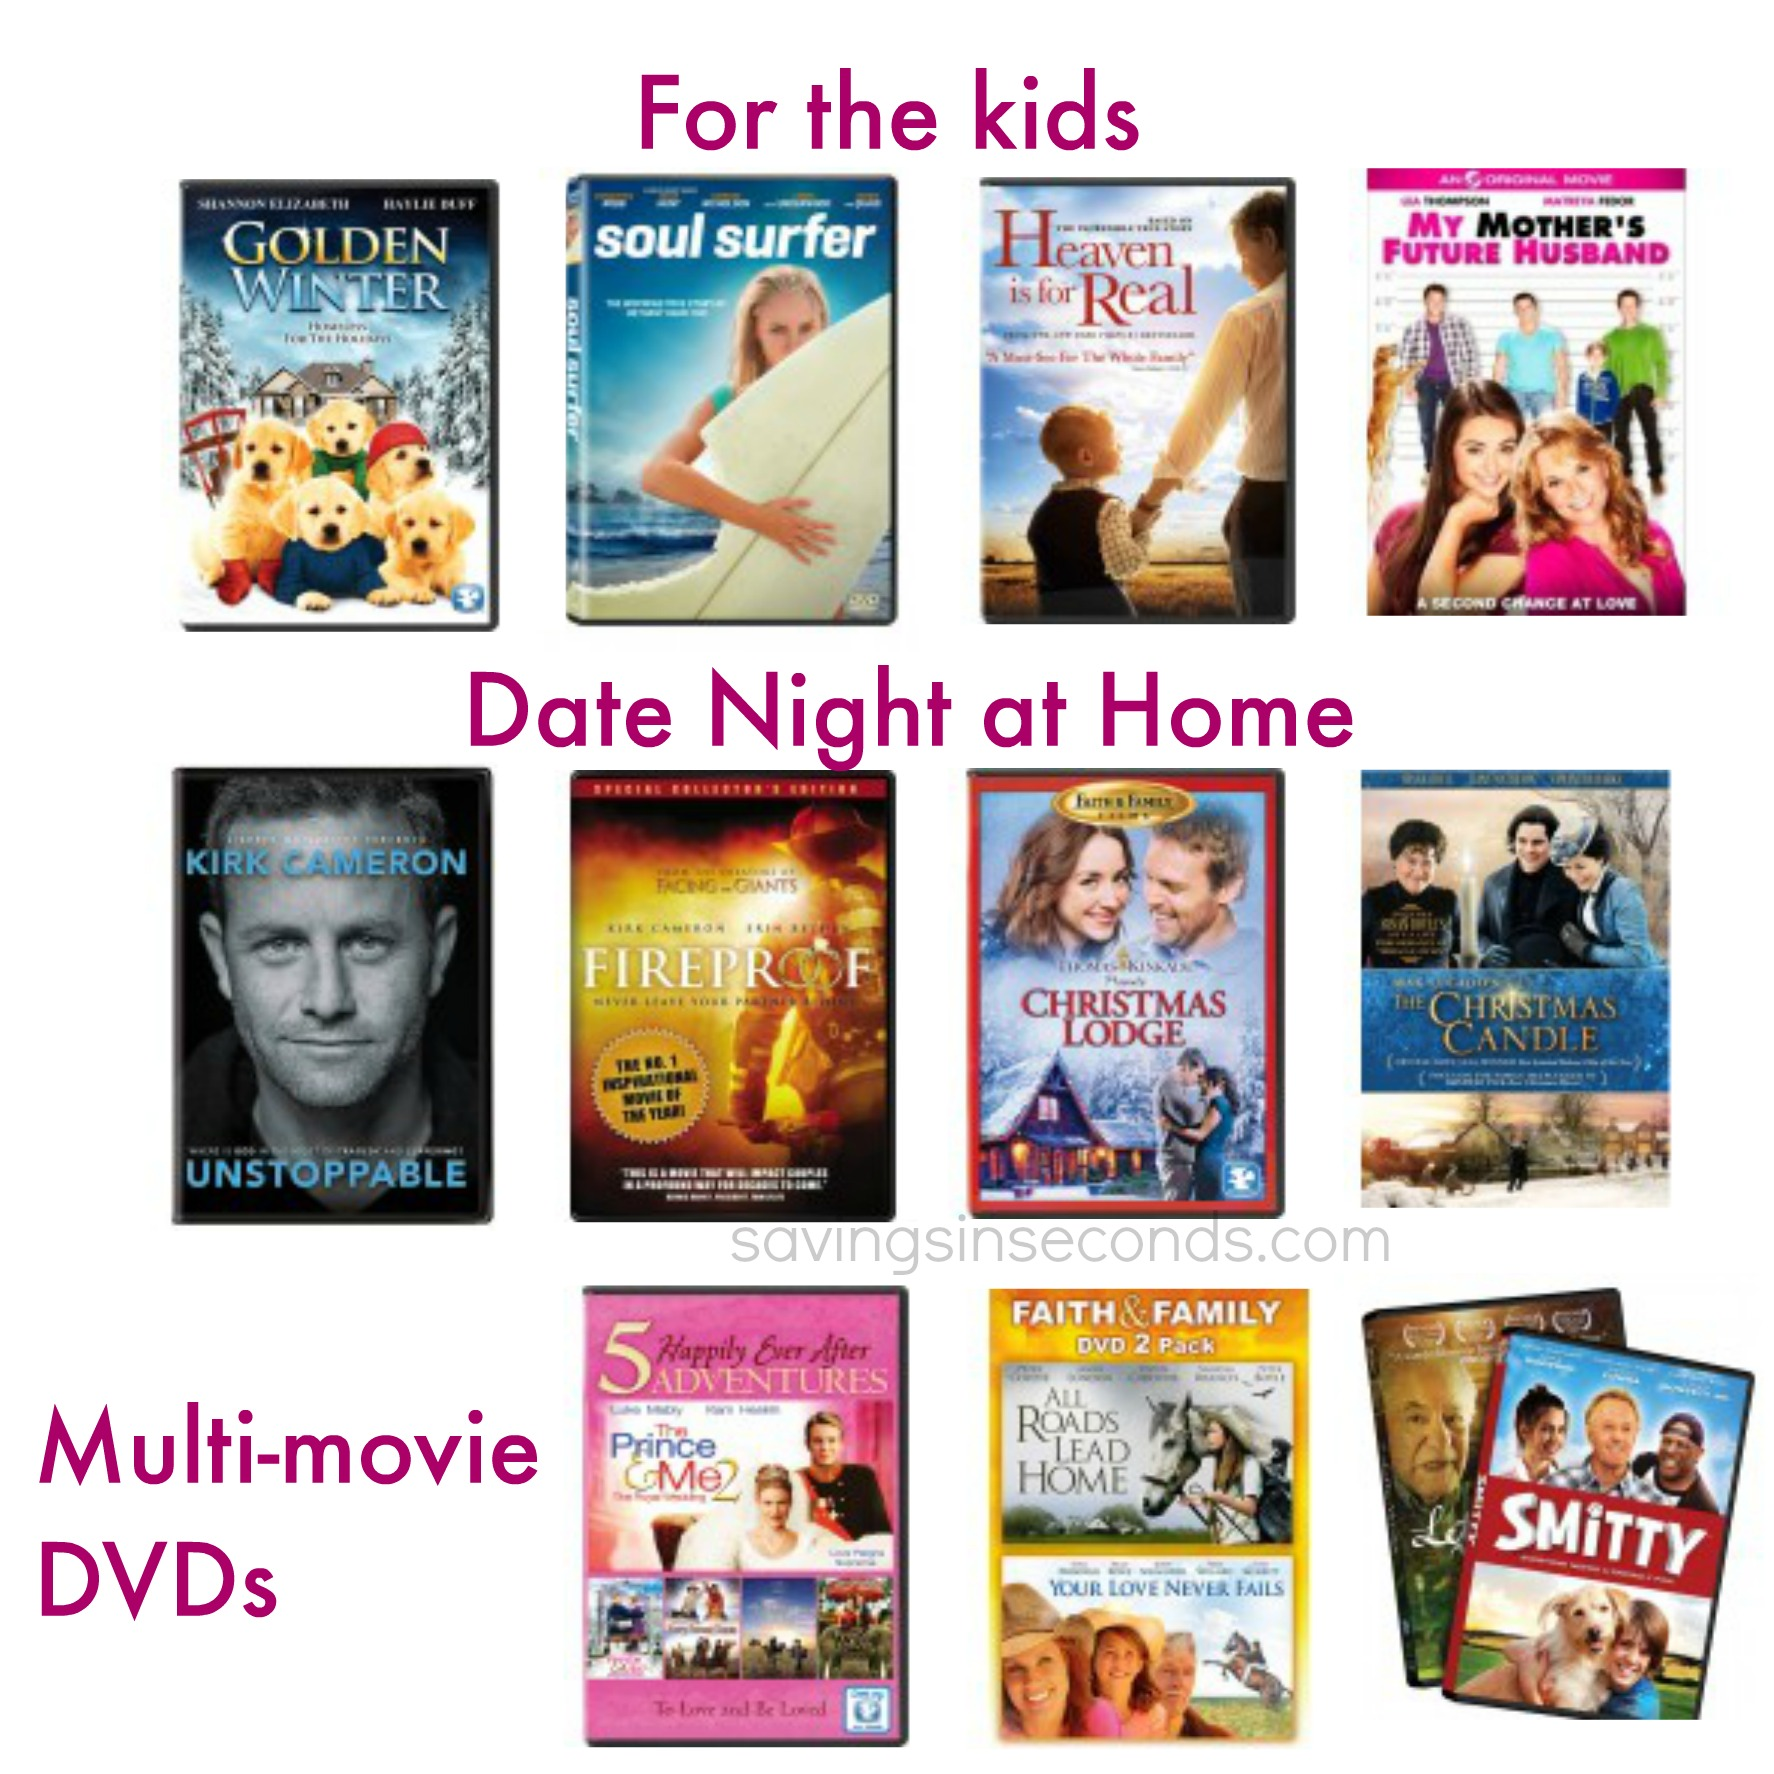 DVD sale at Family Christian #ad - savingsinseconds.com - Savings in ...